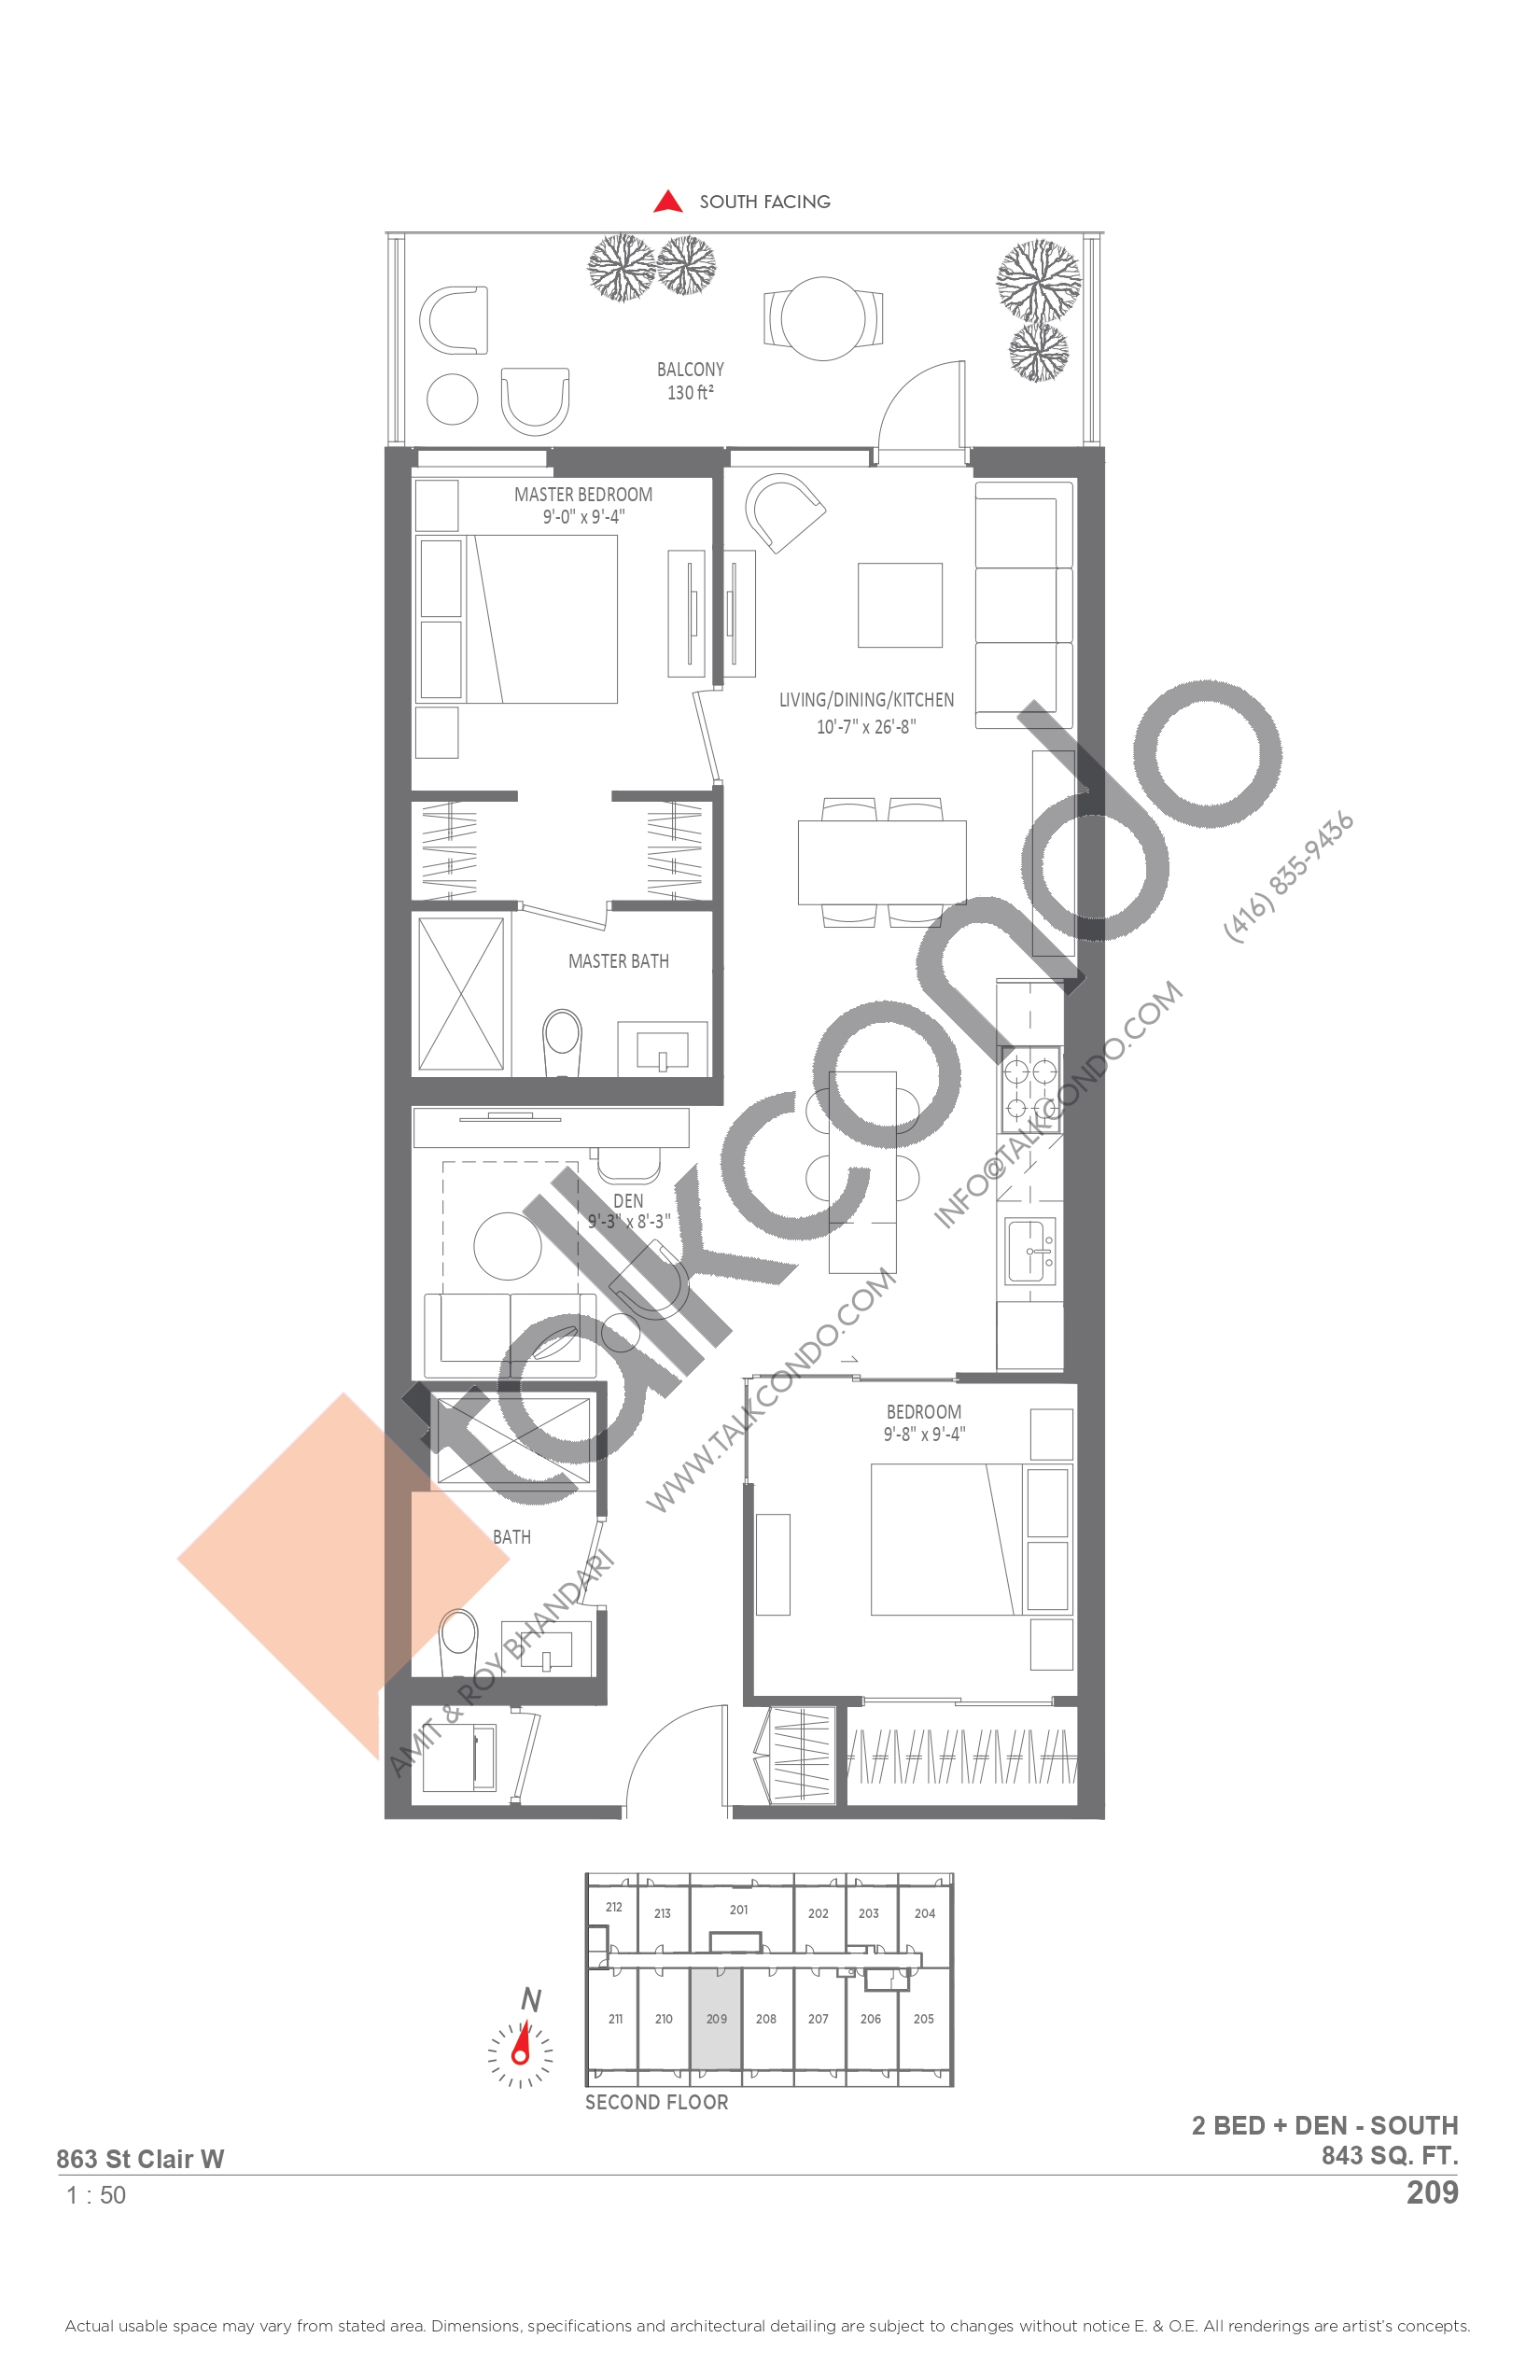 209 Floor Plan at Monza Condos - 843 sq.ft